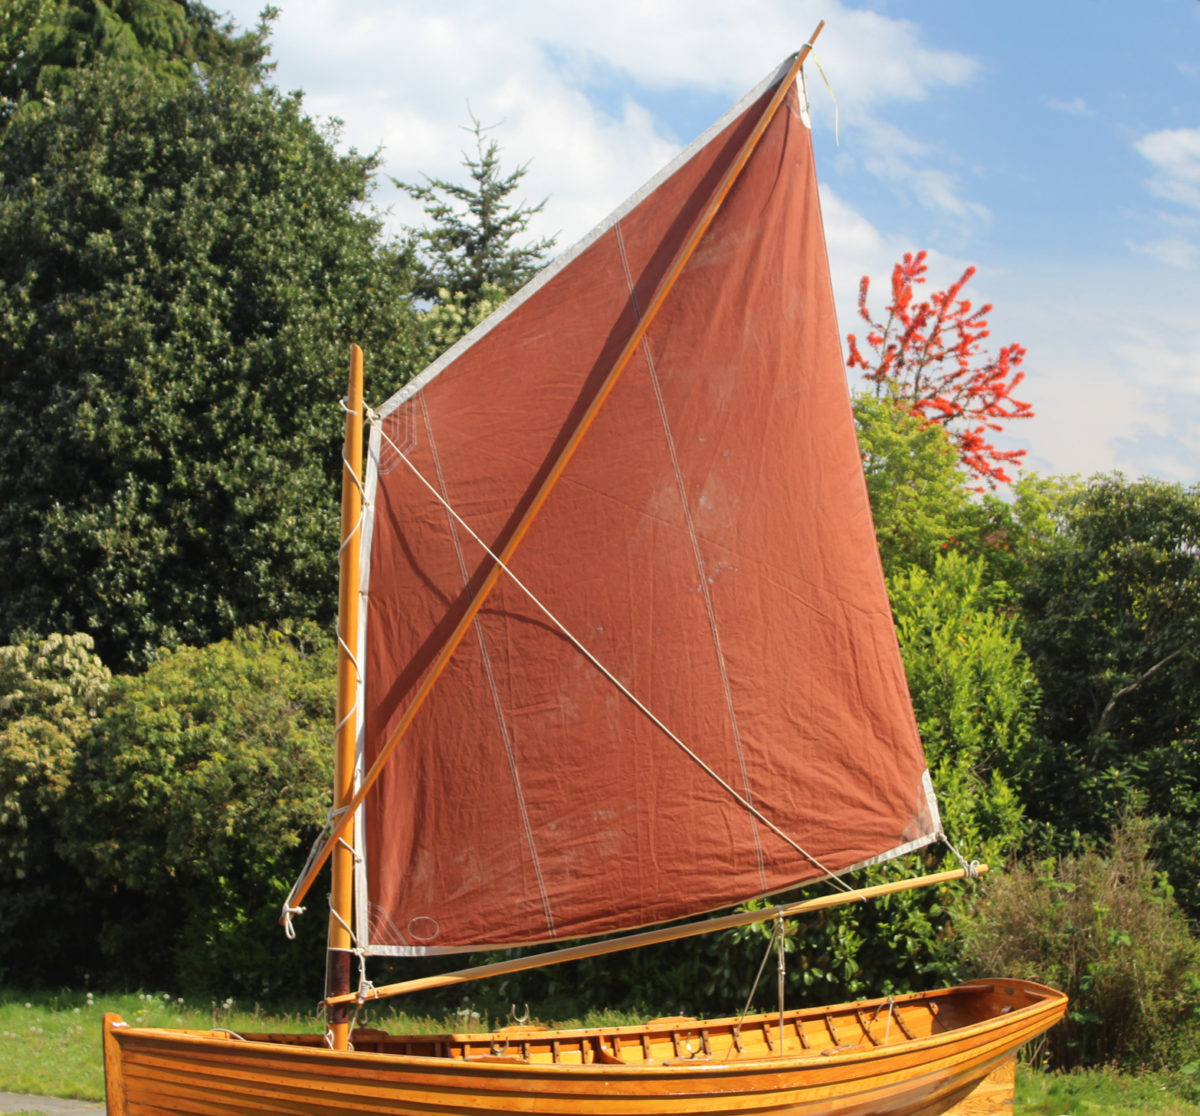 For a spritsail with a boom, the brail slips under the boom.